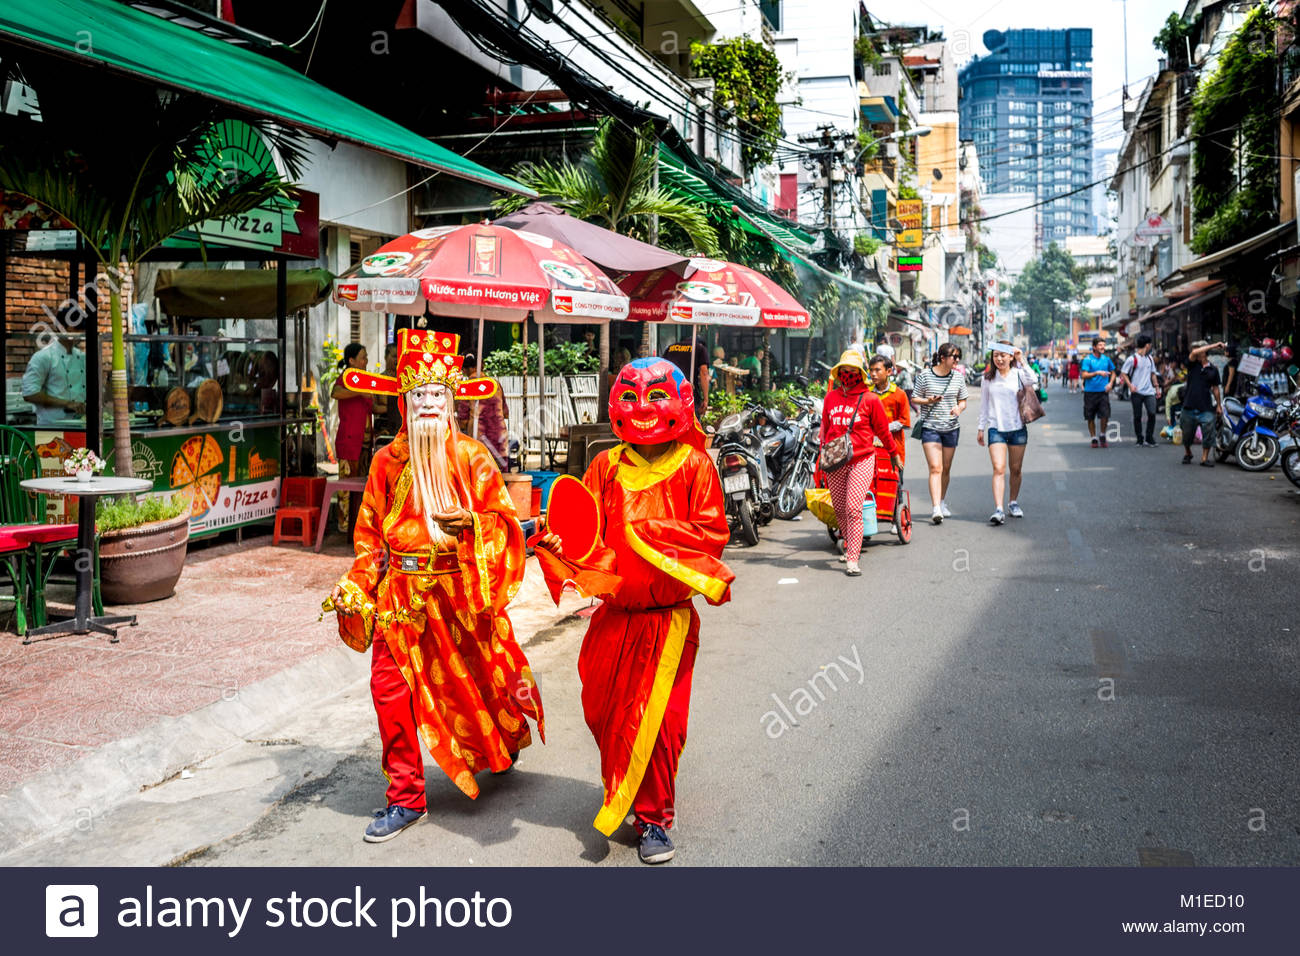 Tet Festival in Ho Chi Minh City Stockbild